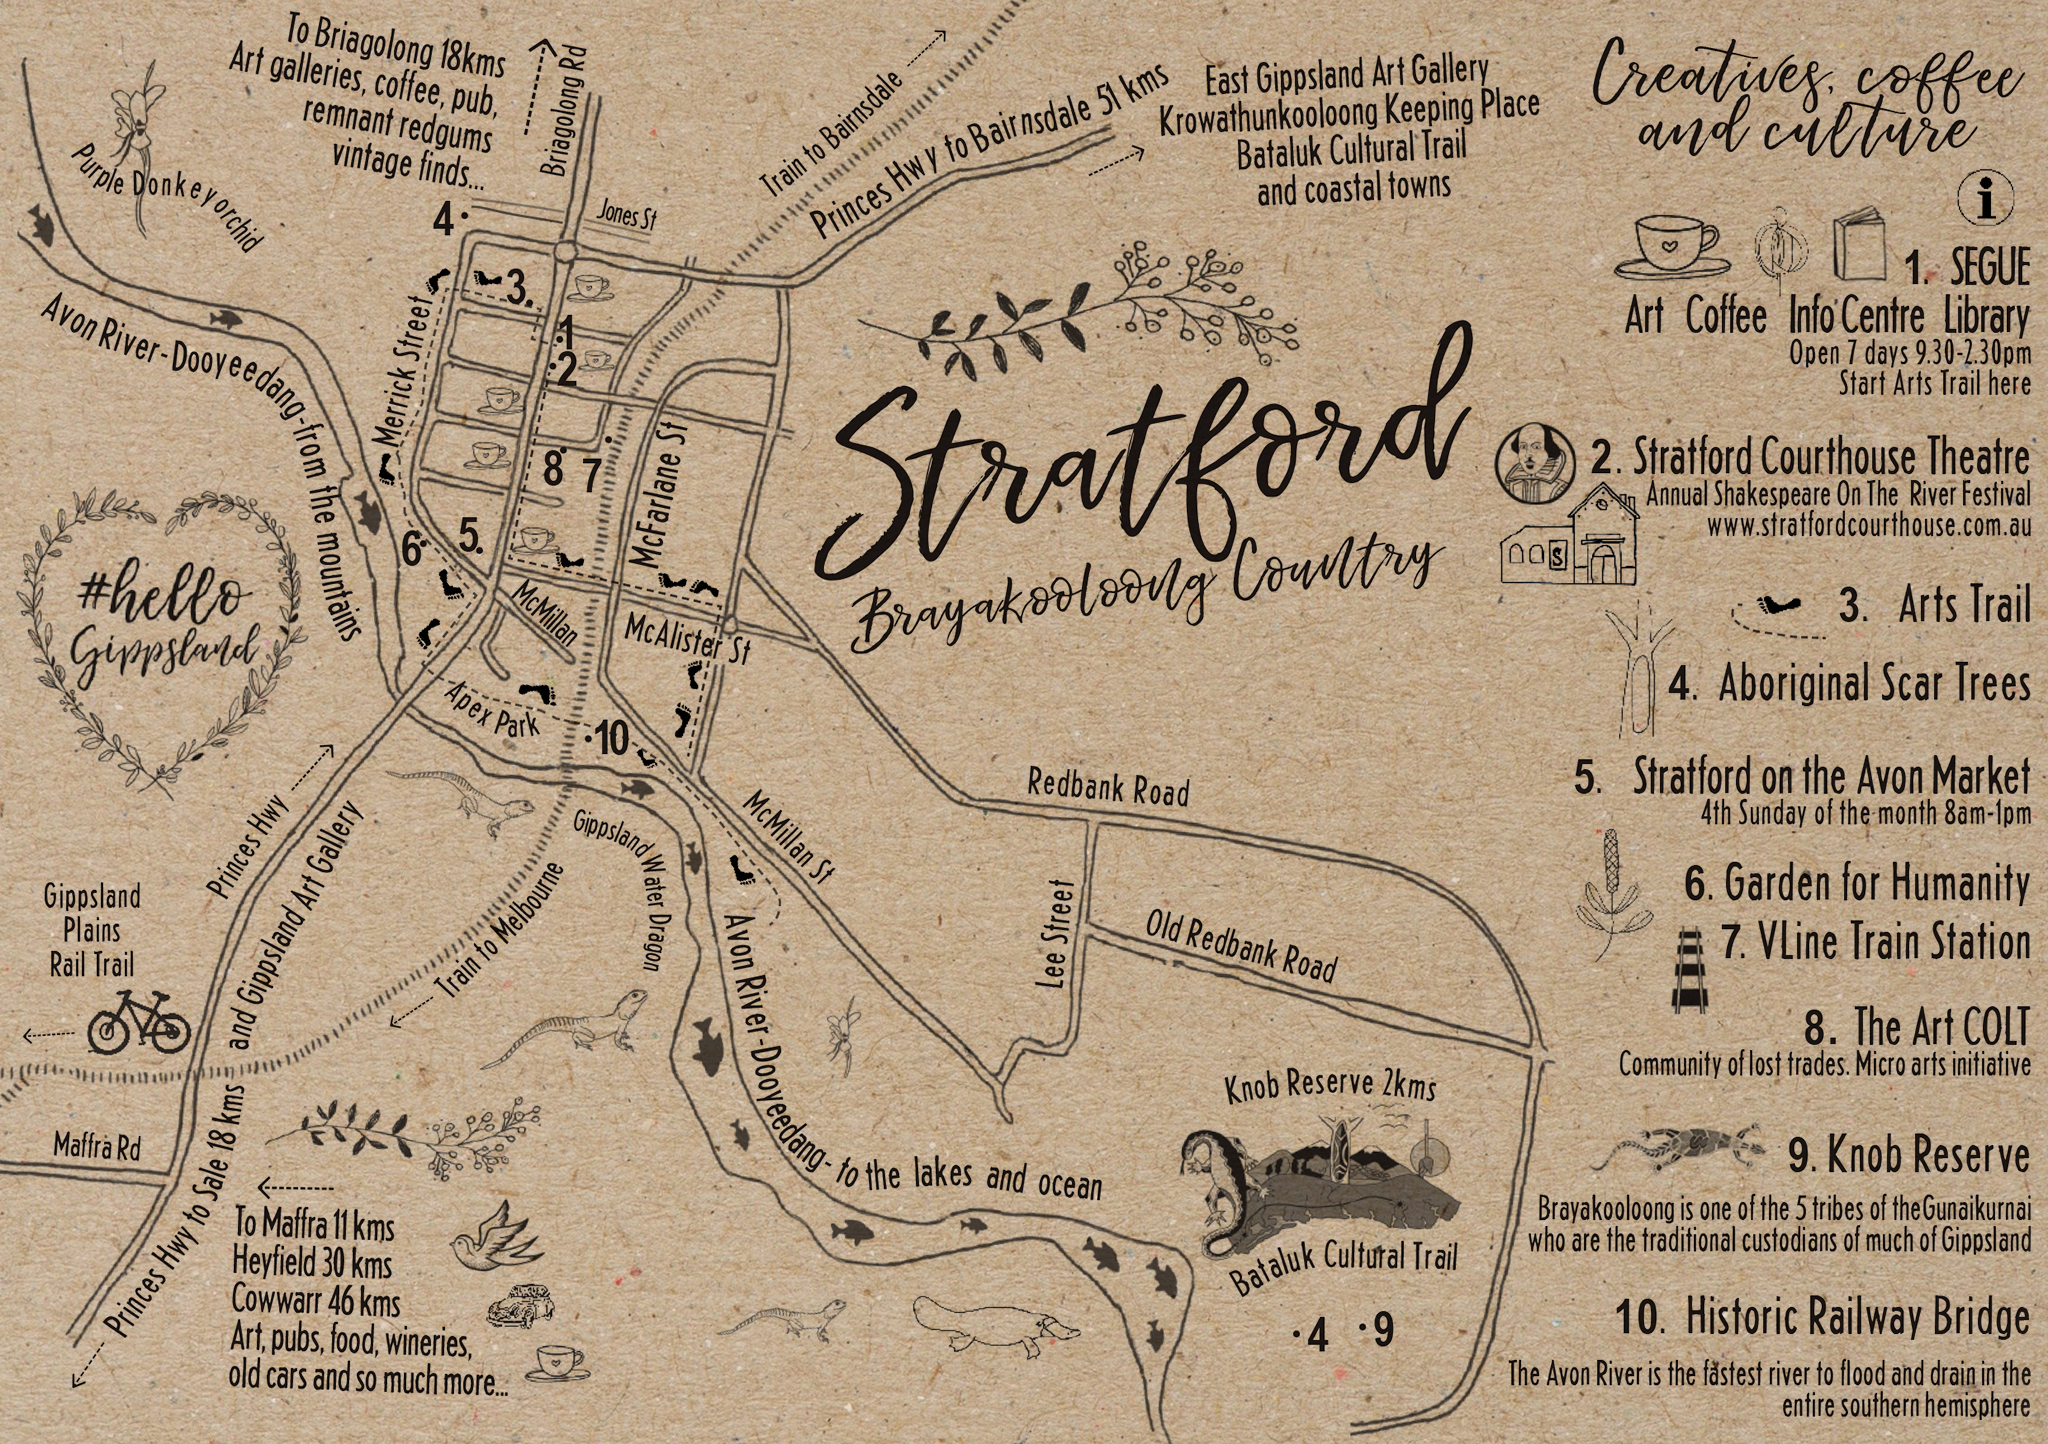 Stratford Creatives, Coffee and Culture walking map